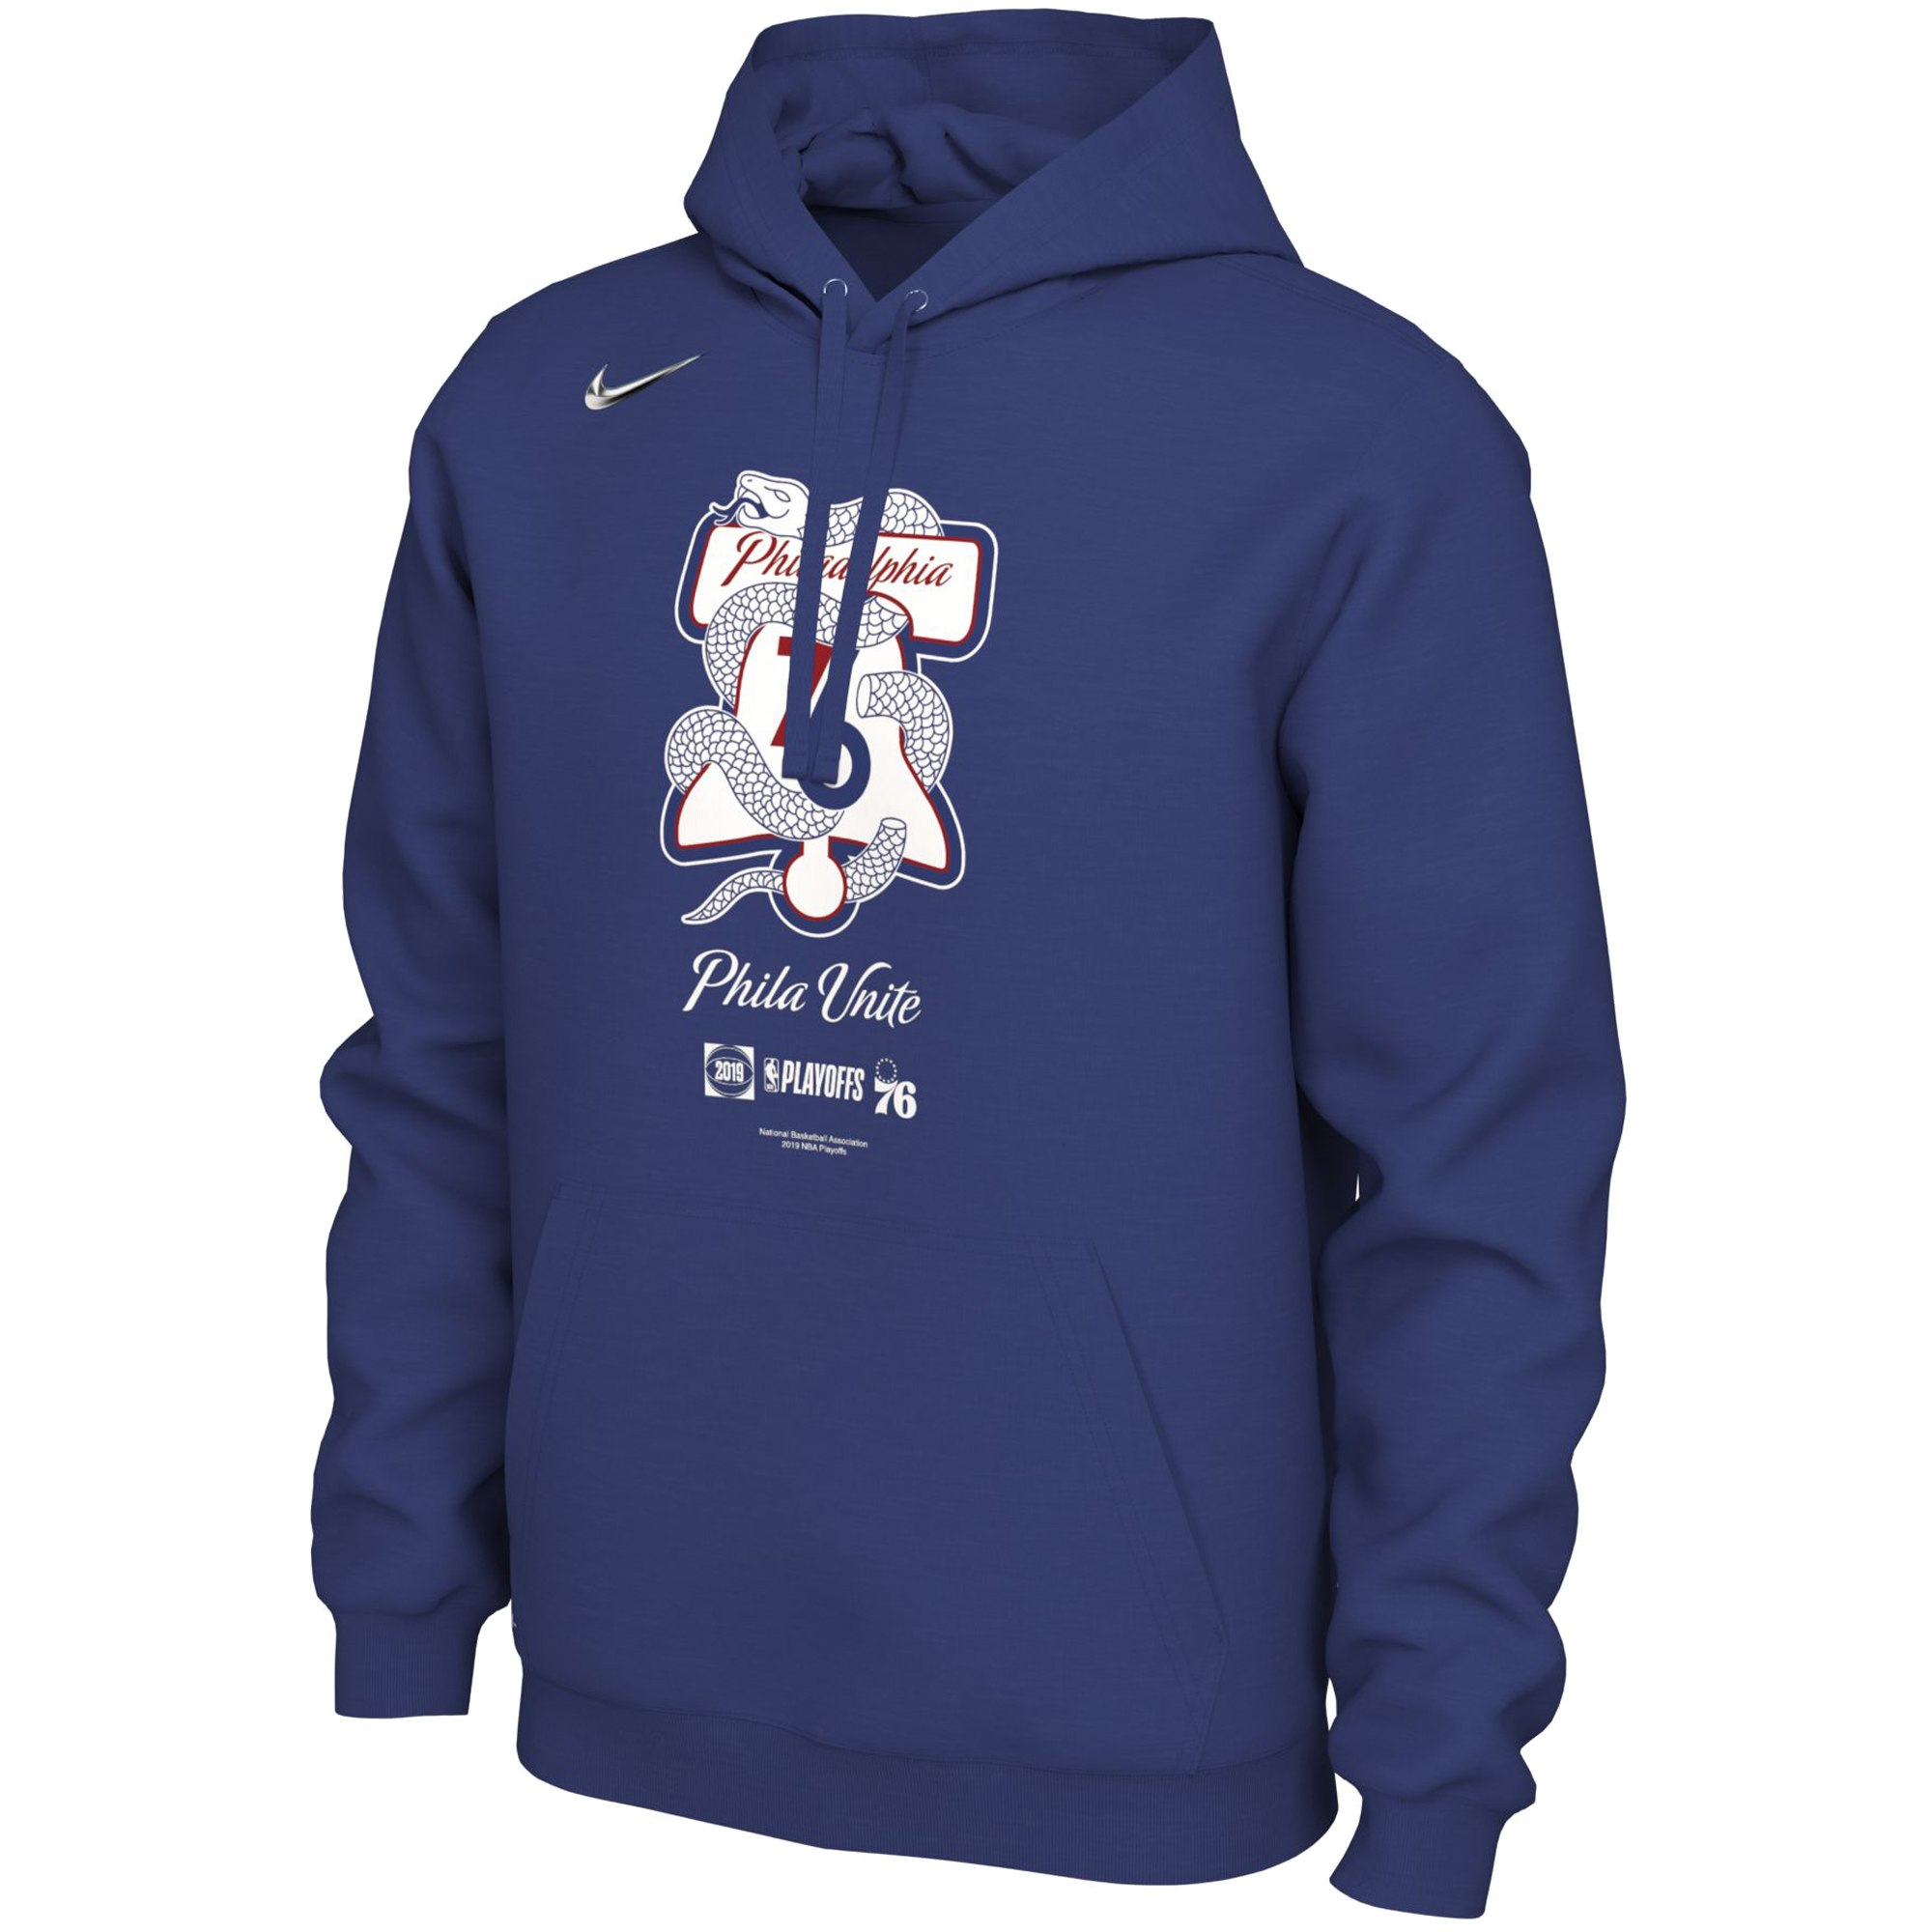 c8827a603 Philadelphia 76ers Men's 2019 NBA Playoffs Mantra Hoodie by Nike ...